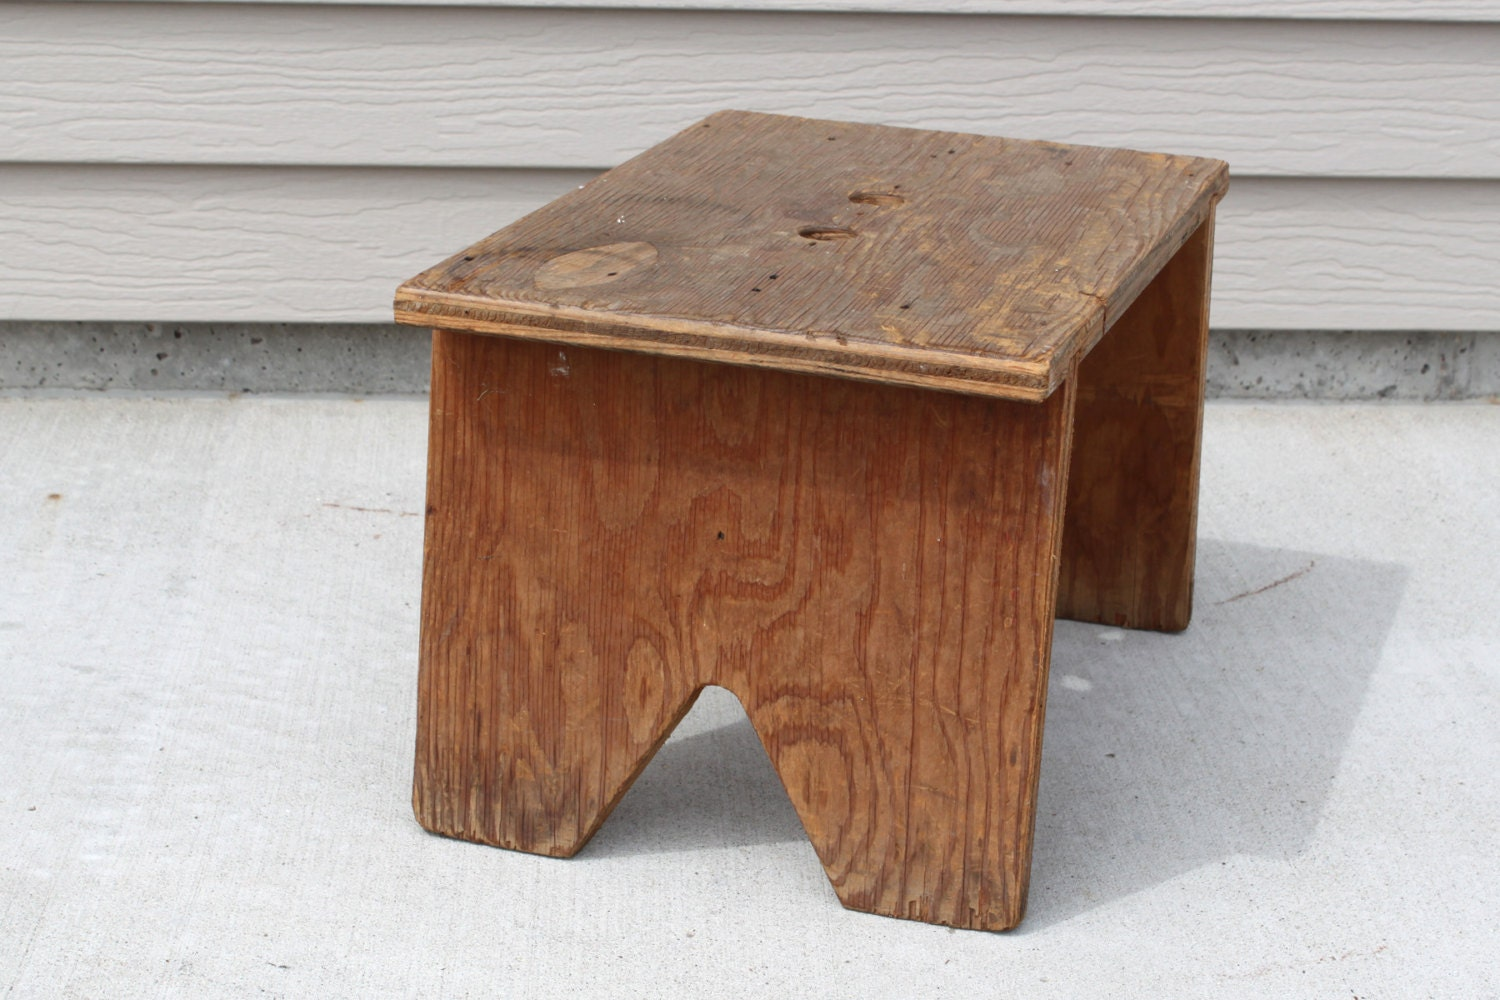 Vintage Wood Step Stool Wood Bench Holes For Carrying